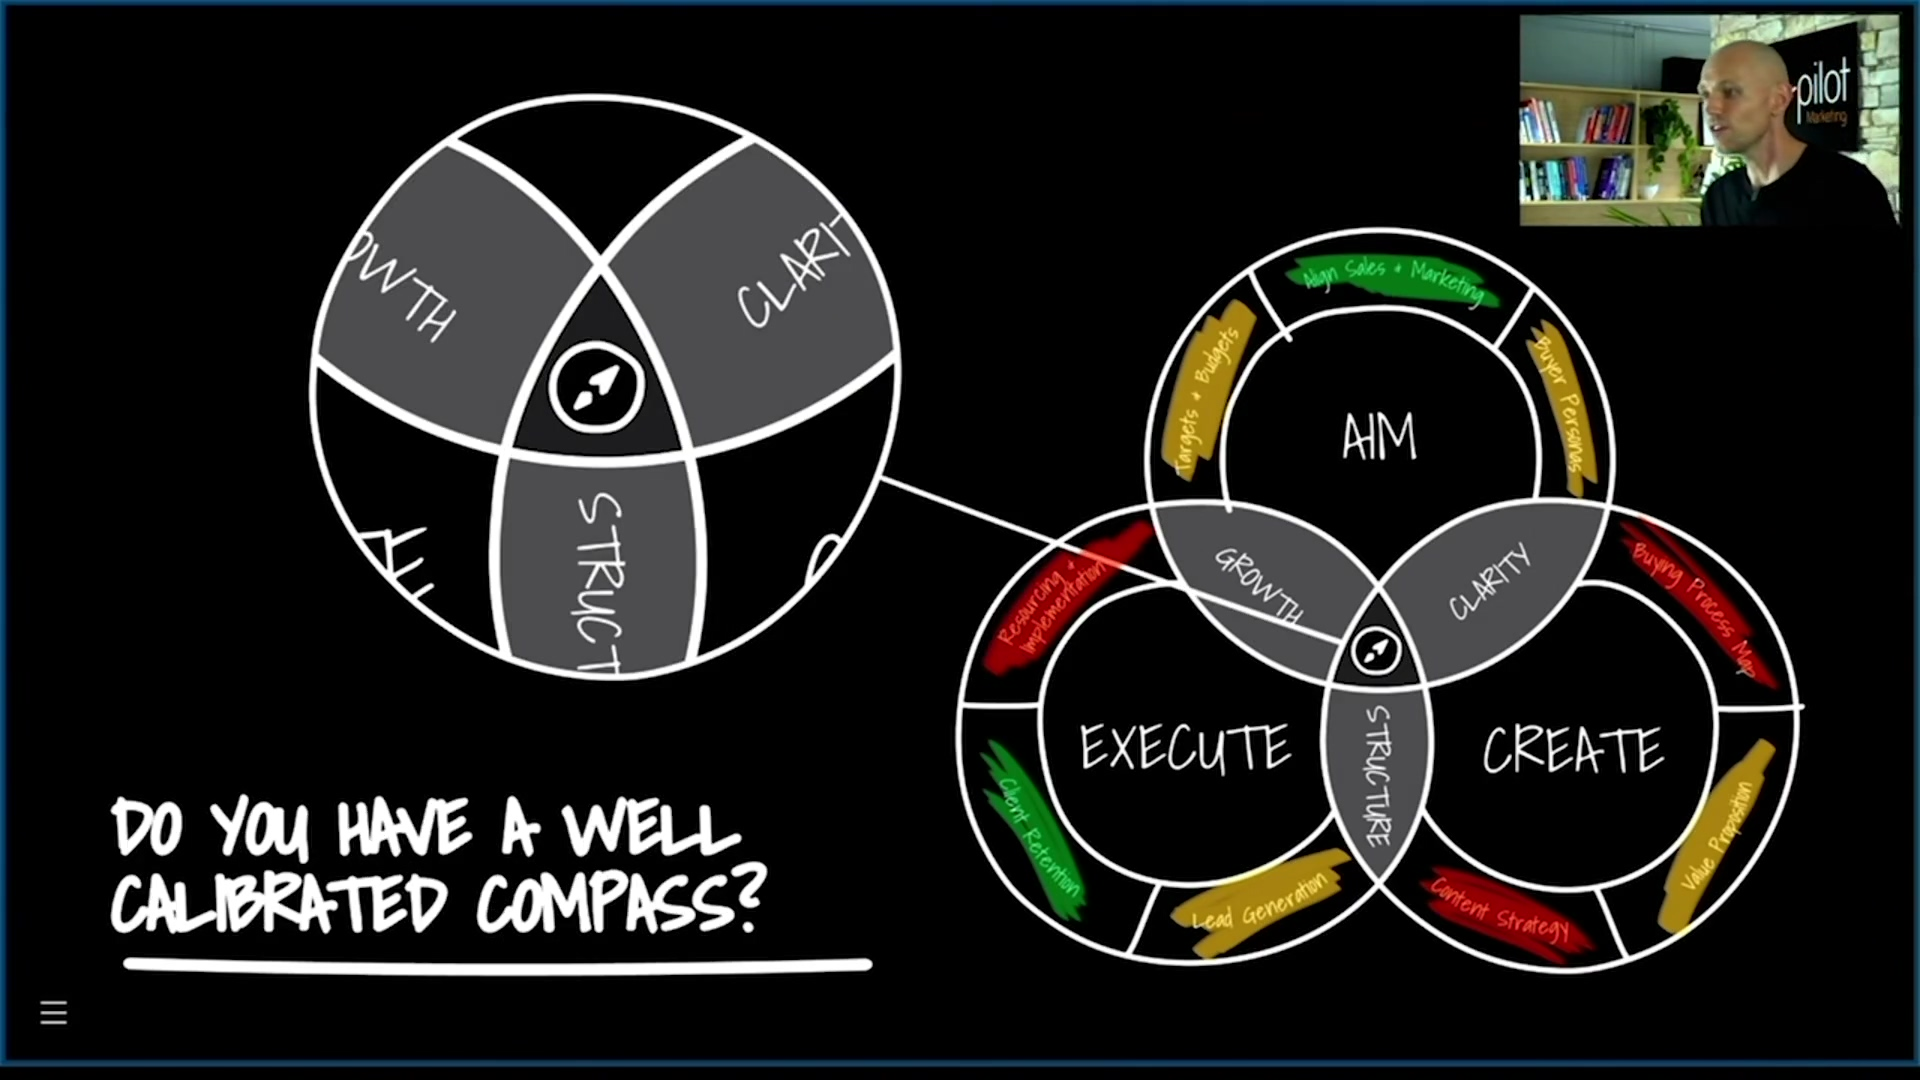 FB-Ads-Page-Compass-Model